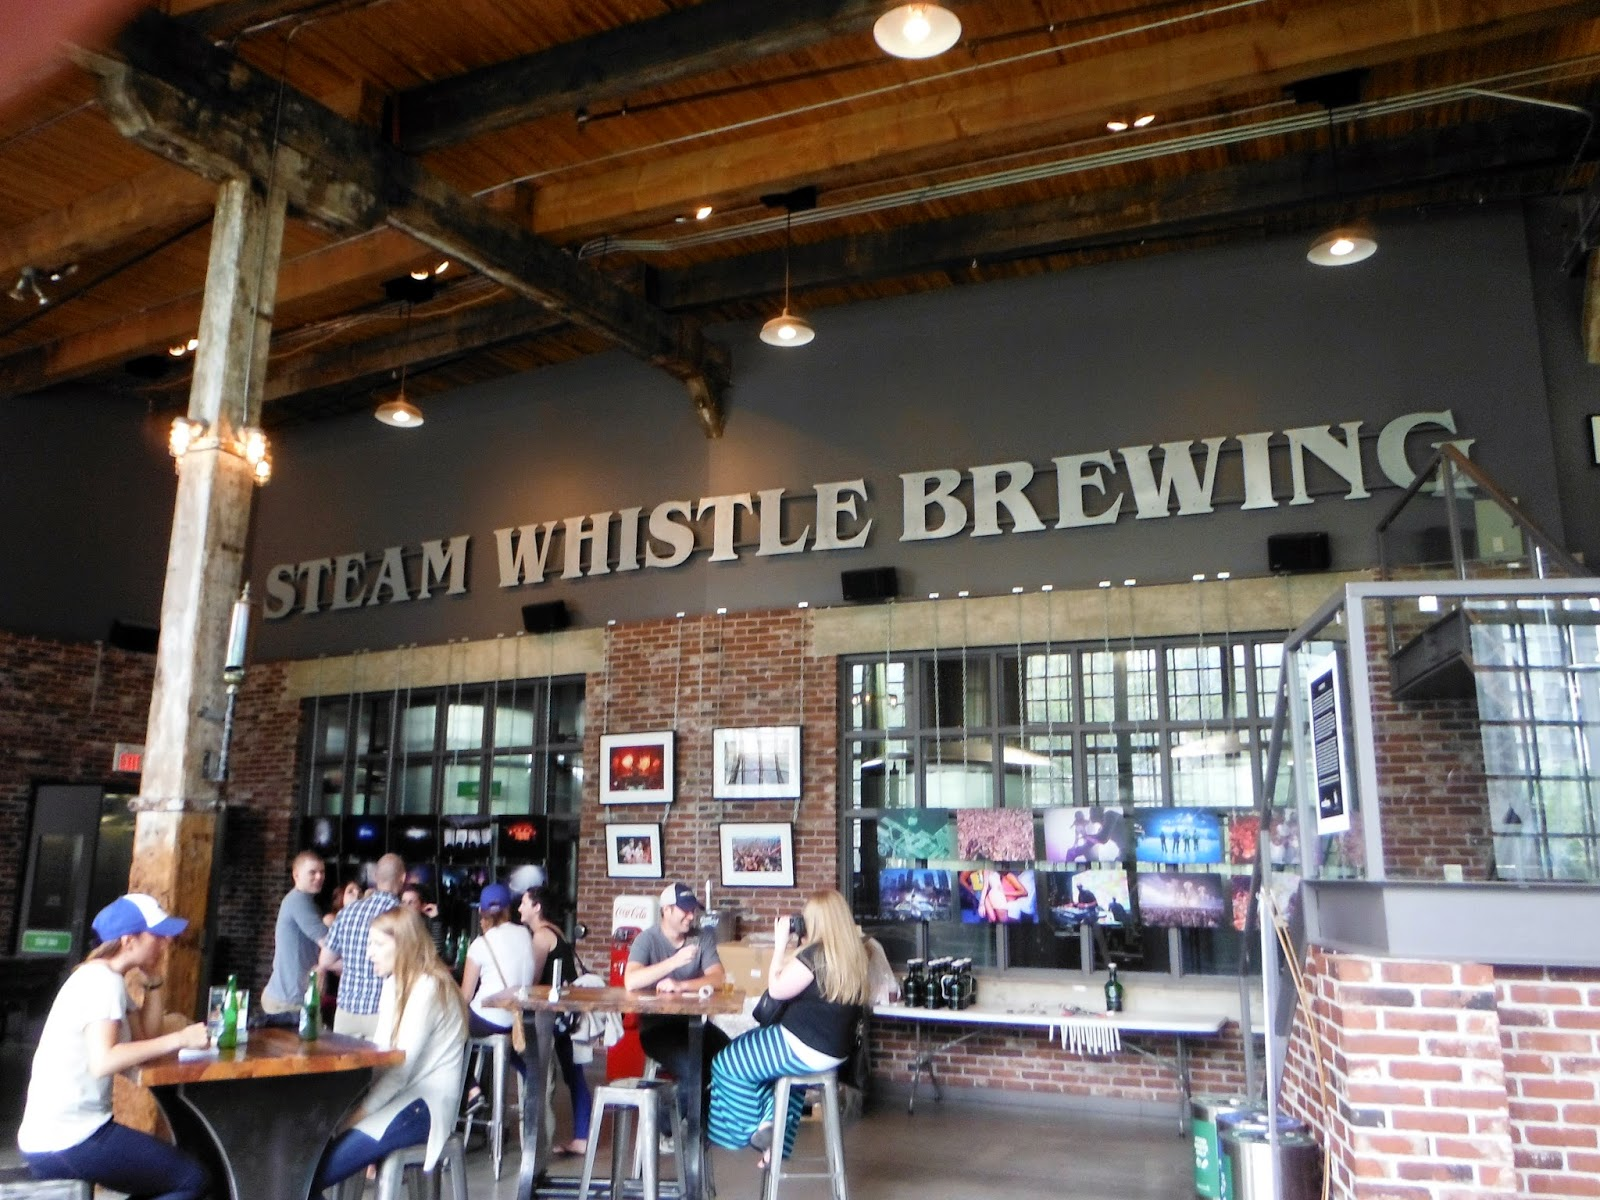 Steam Whistle Brewery located at The Roundhouse, Toronto, Ontario, Canada, Melanie.Ps, Beer, Brewing, Explore, Visit, Tour, The Purple Scarf, Lifestyle